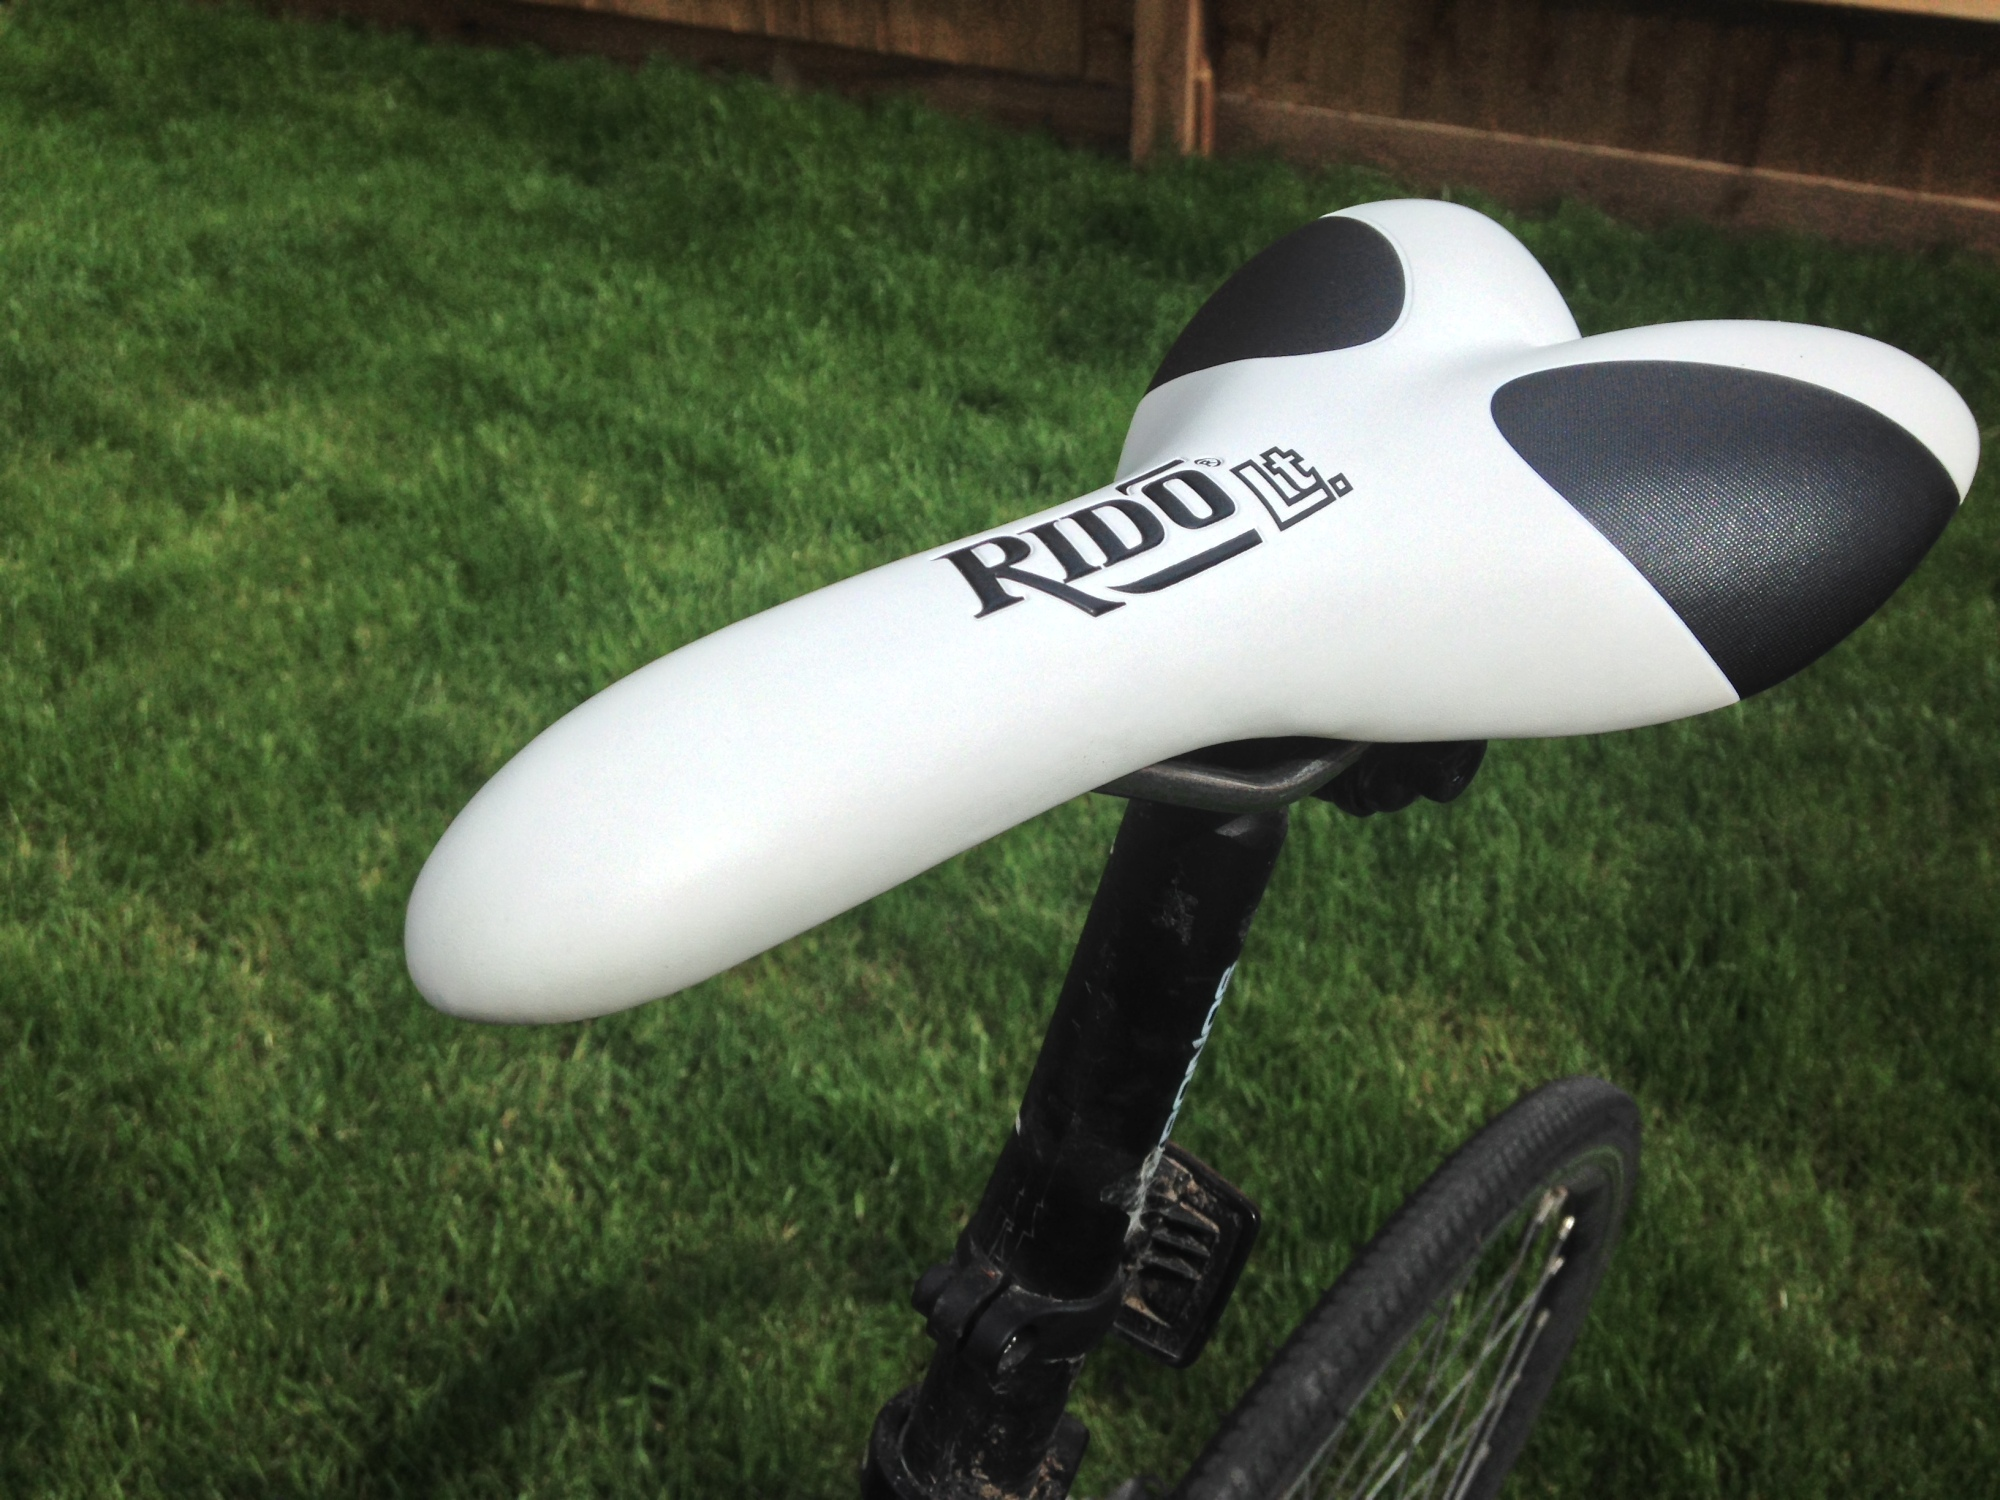 rido saddle RLt review